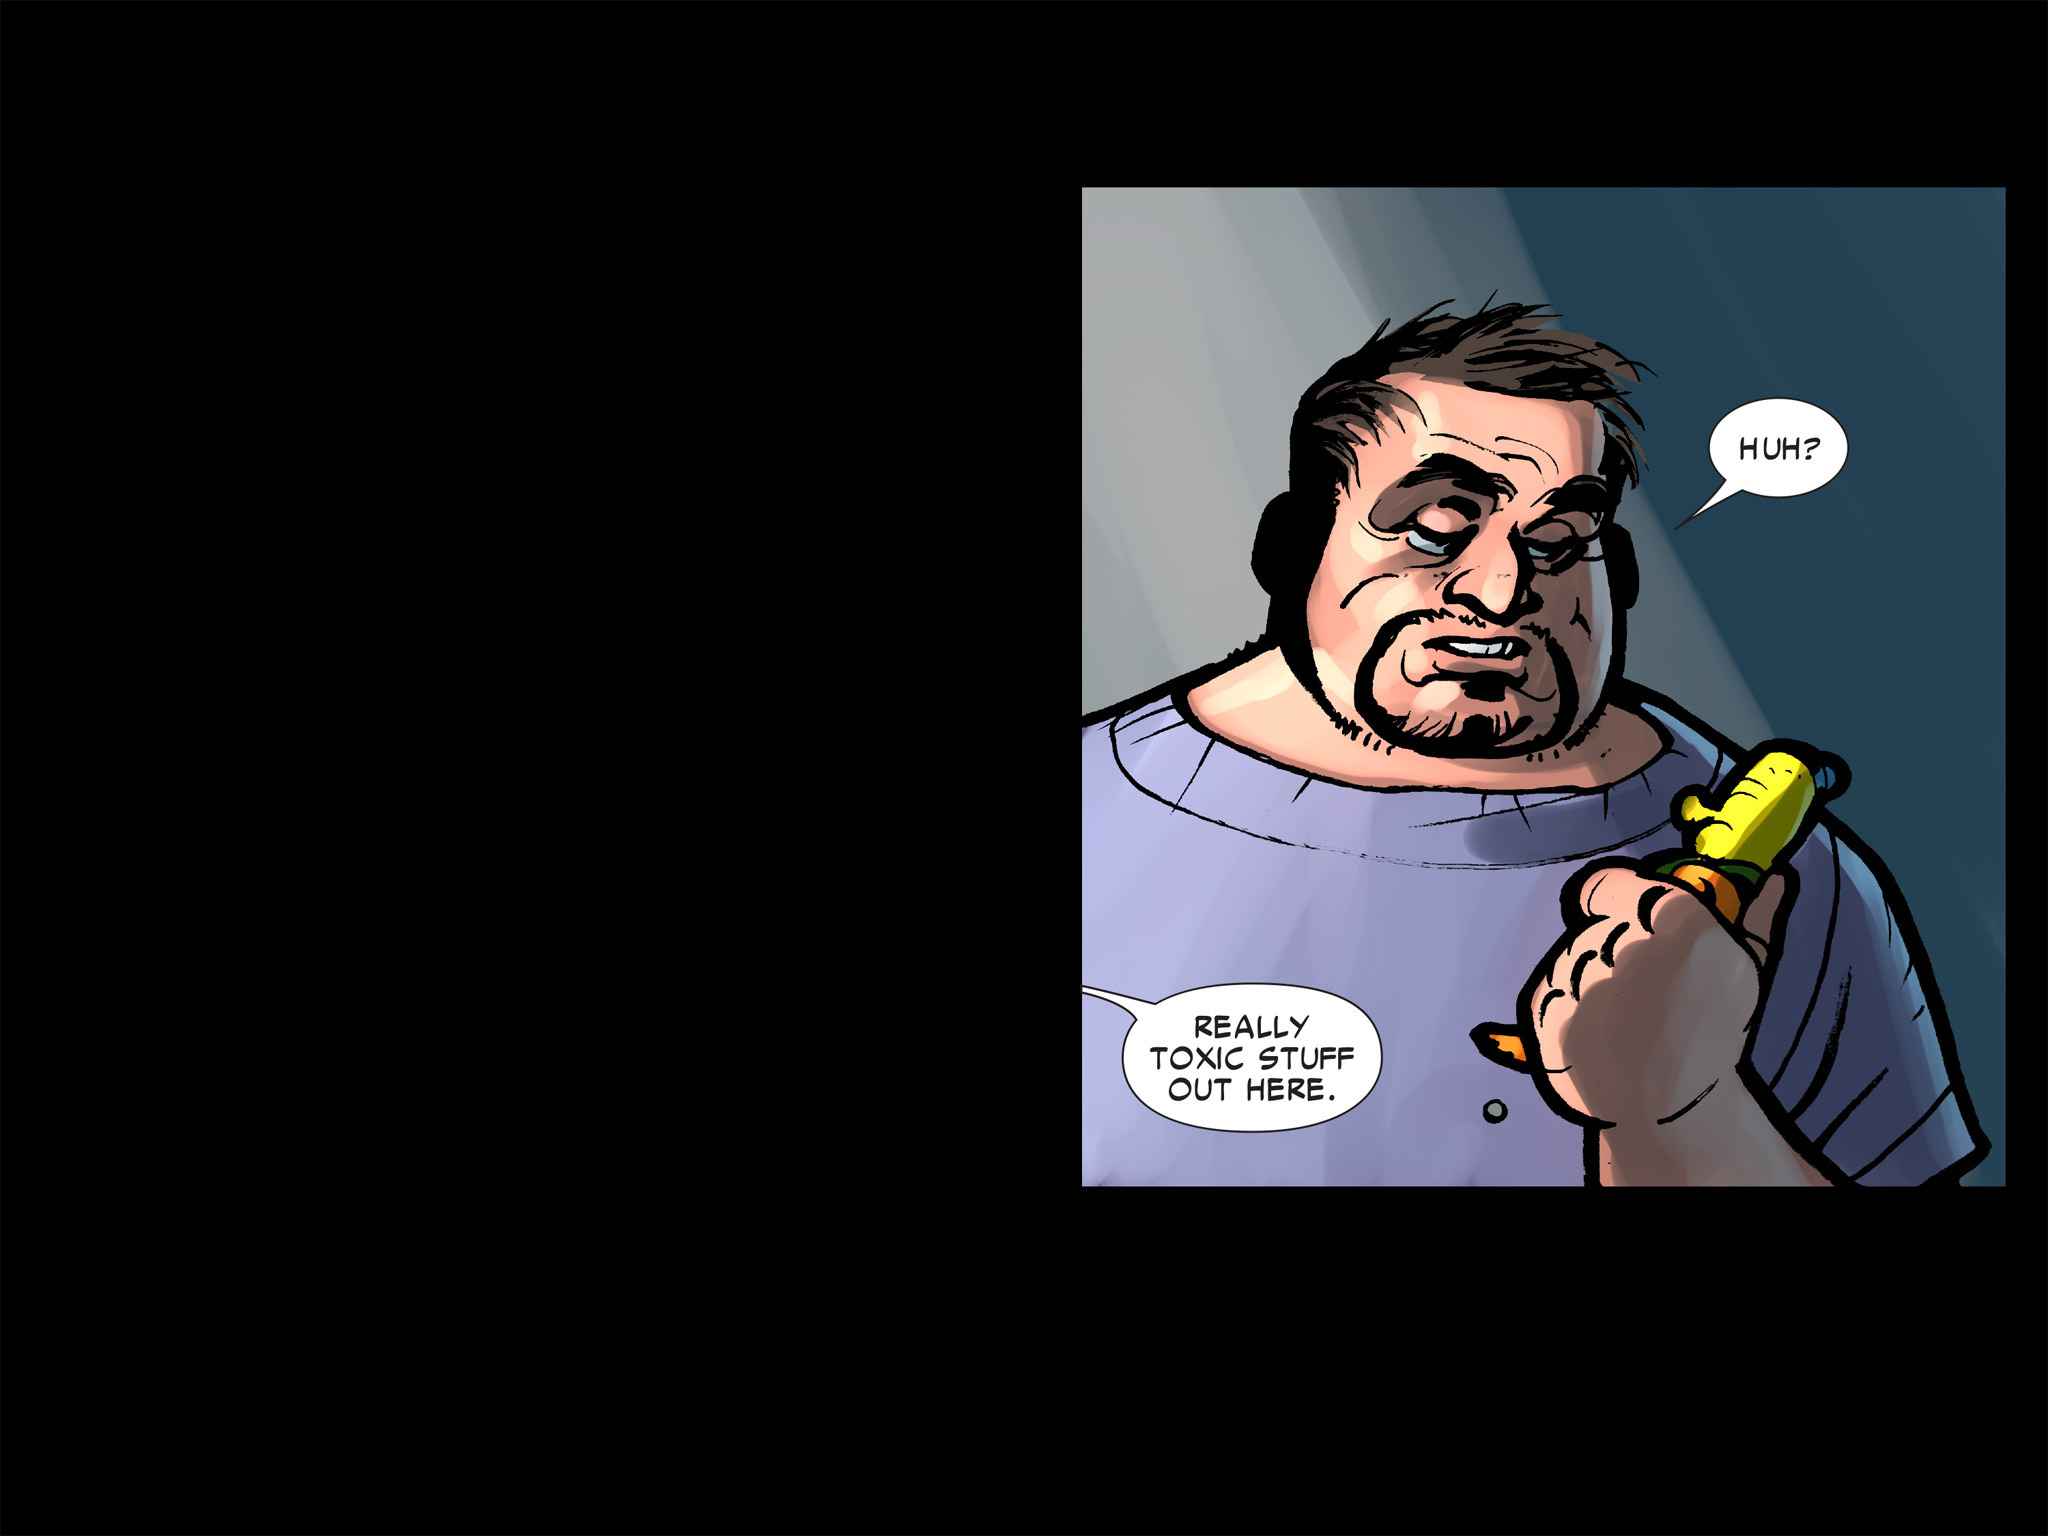 Read online Amazing Spider-Man: Who Am I? comic -  Issue # Full (Part 2) - 1